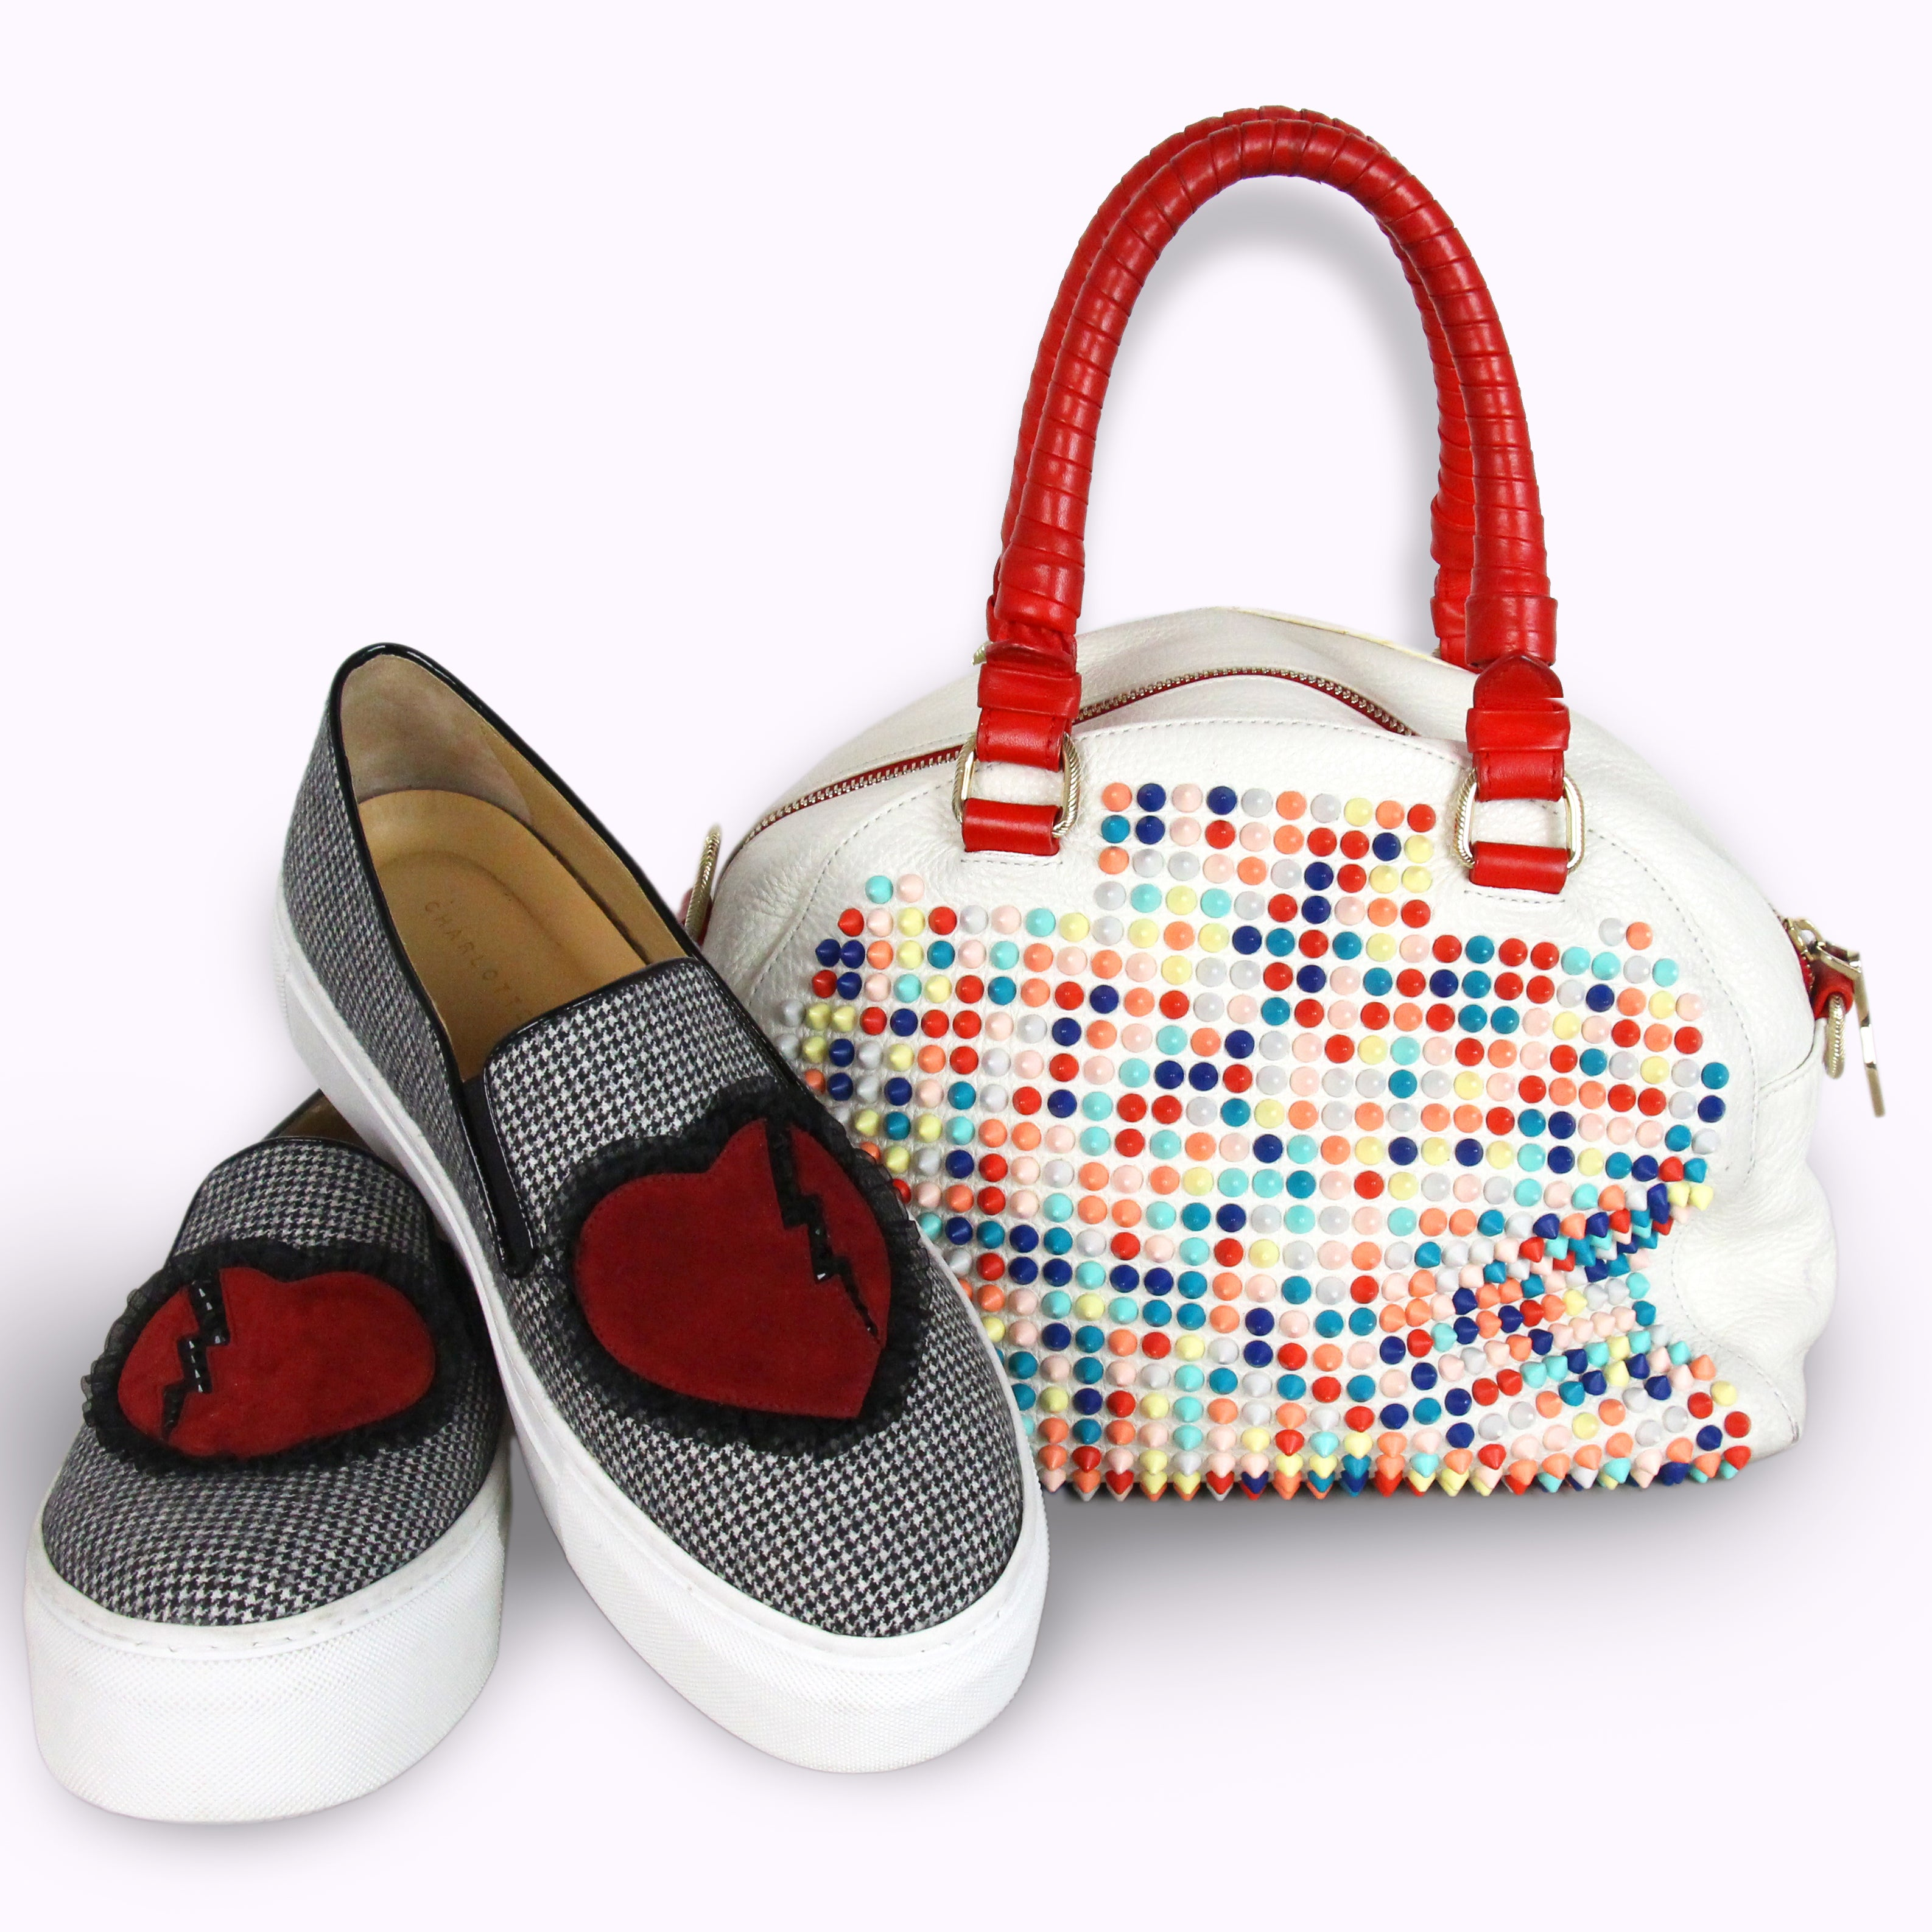 Christian Louboutin Panettone Spikes White Multicolor Studded Bag